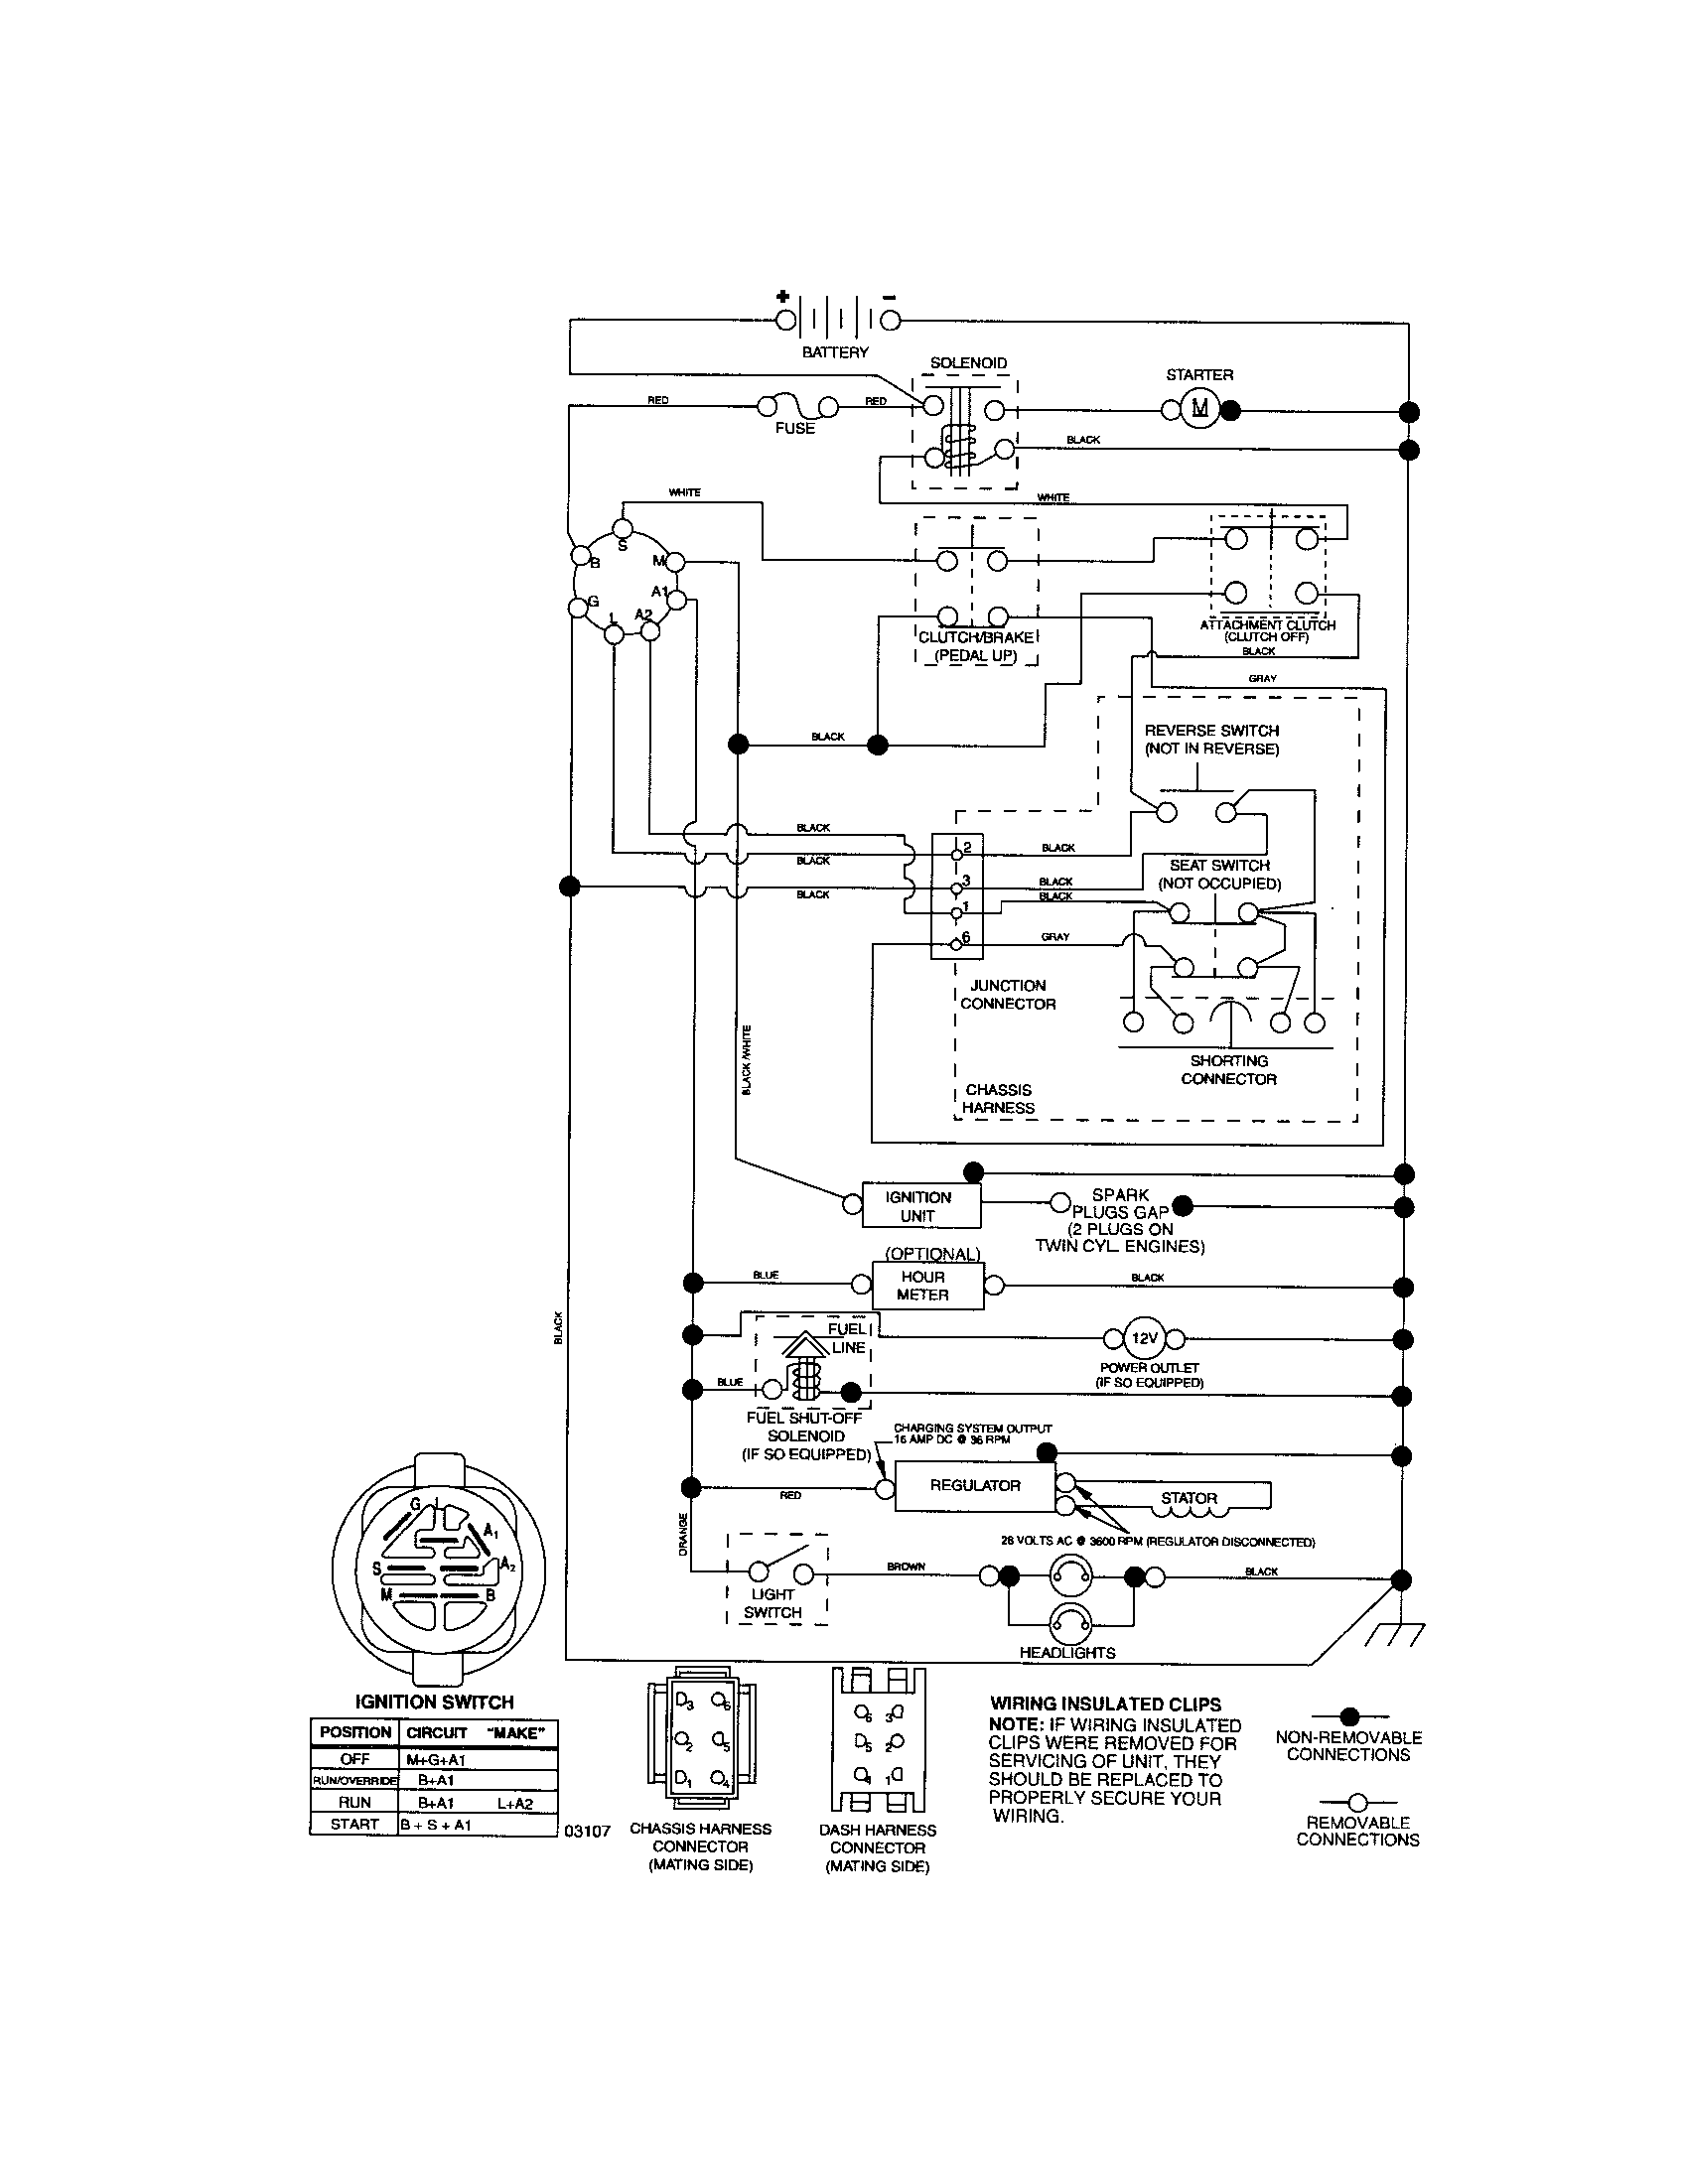 6af5f1447fd13c8443376822ddc1e105 craftsman riding mower electrical diagram wiring diagram Lawn Boy Mower Carbureator Diagram at eliteediting.co